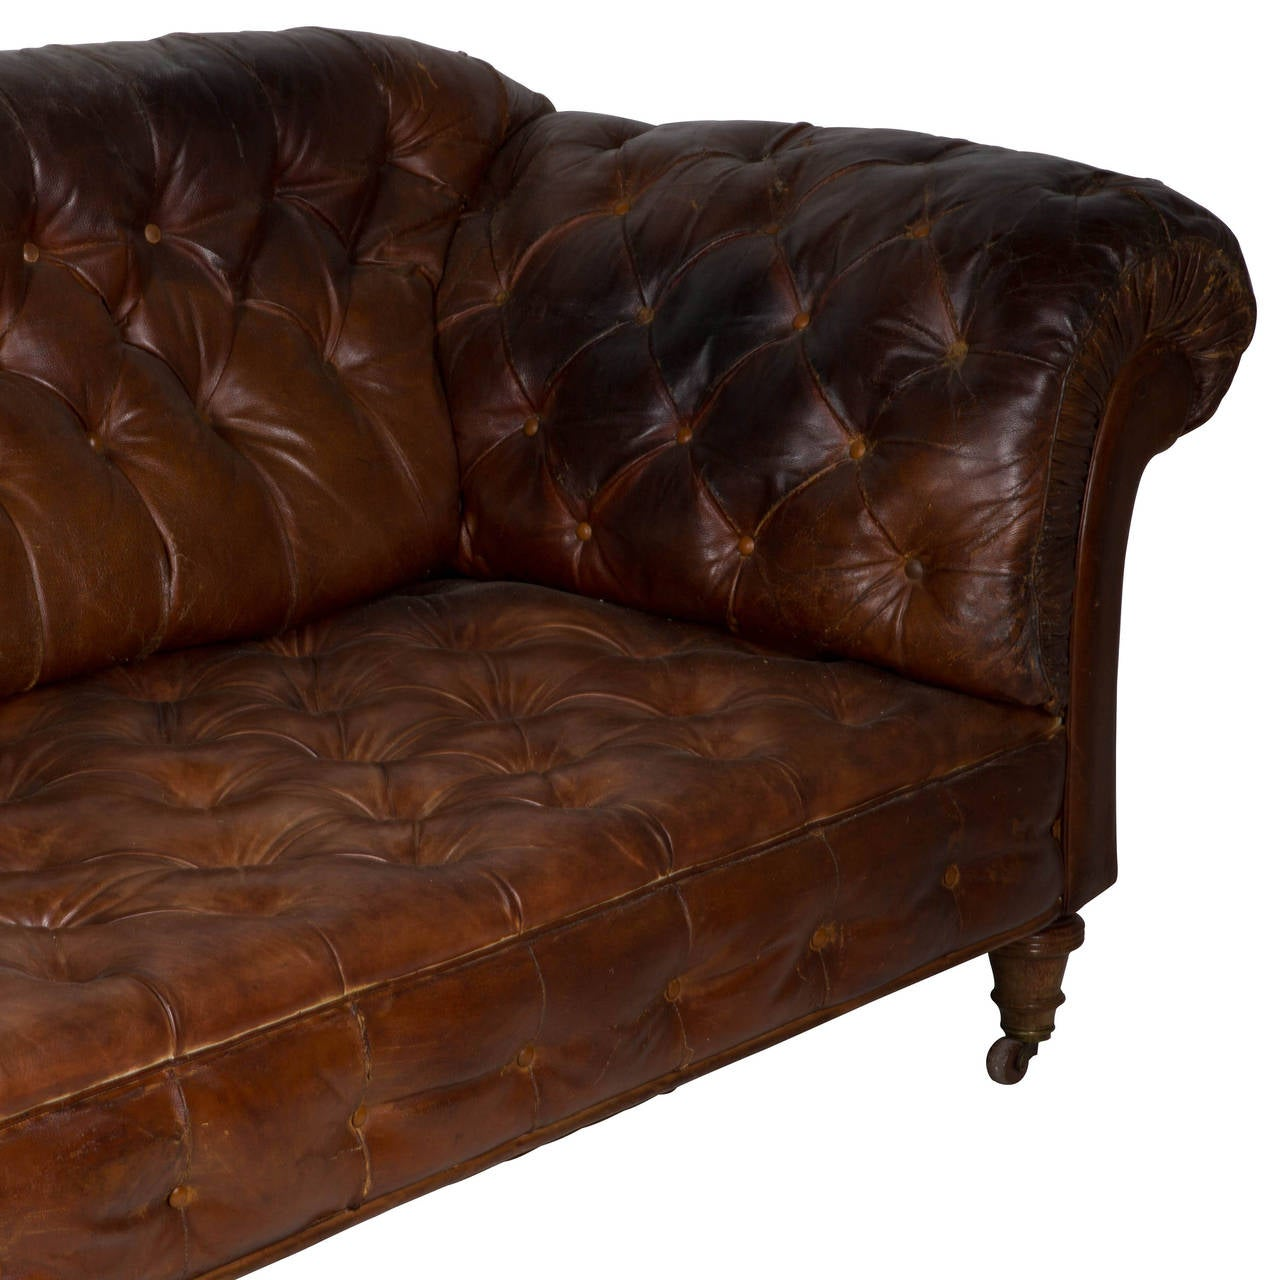 Leather Sofas Gloucestershire: Large Victorian Leather Sofa For Sale At 1stdibs